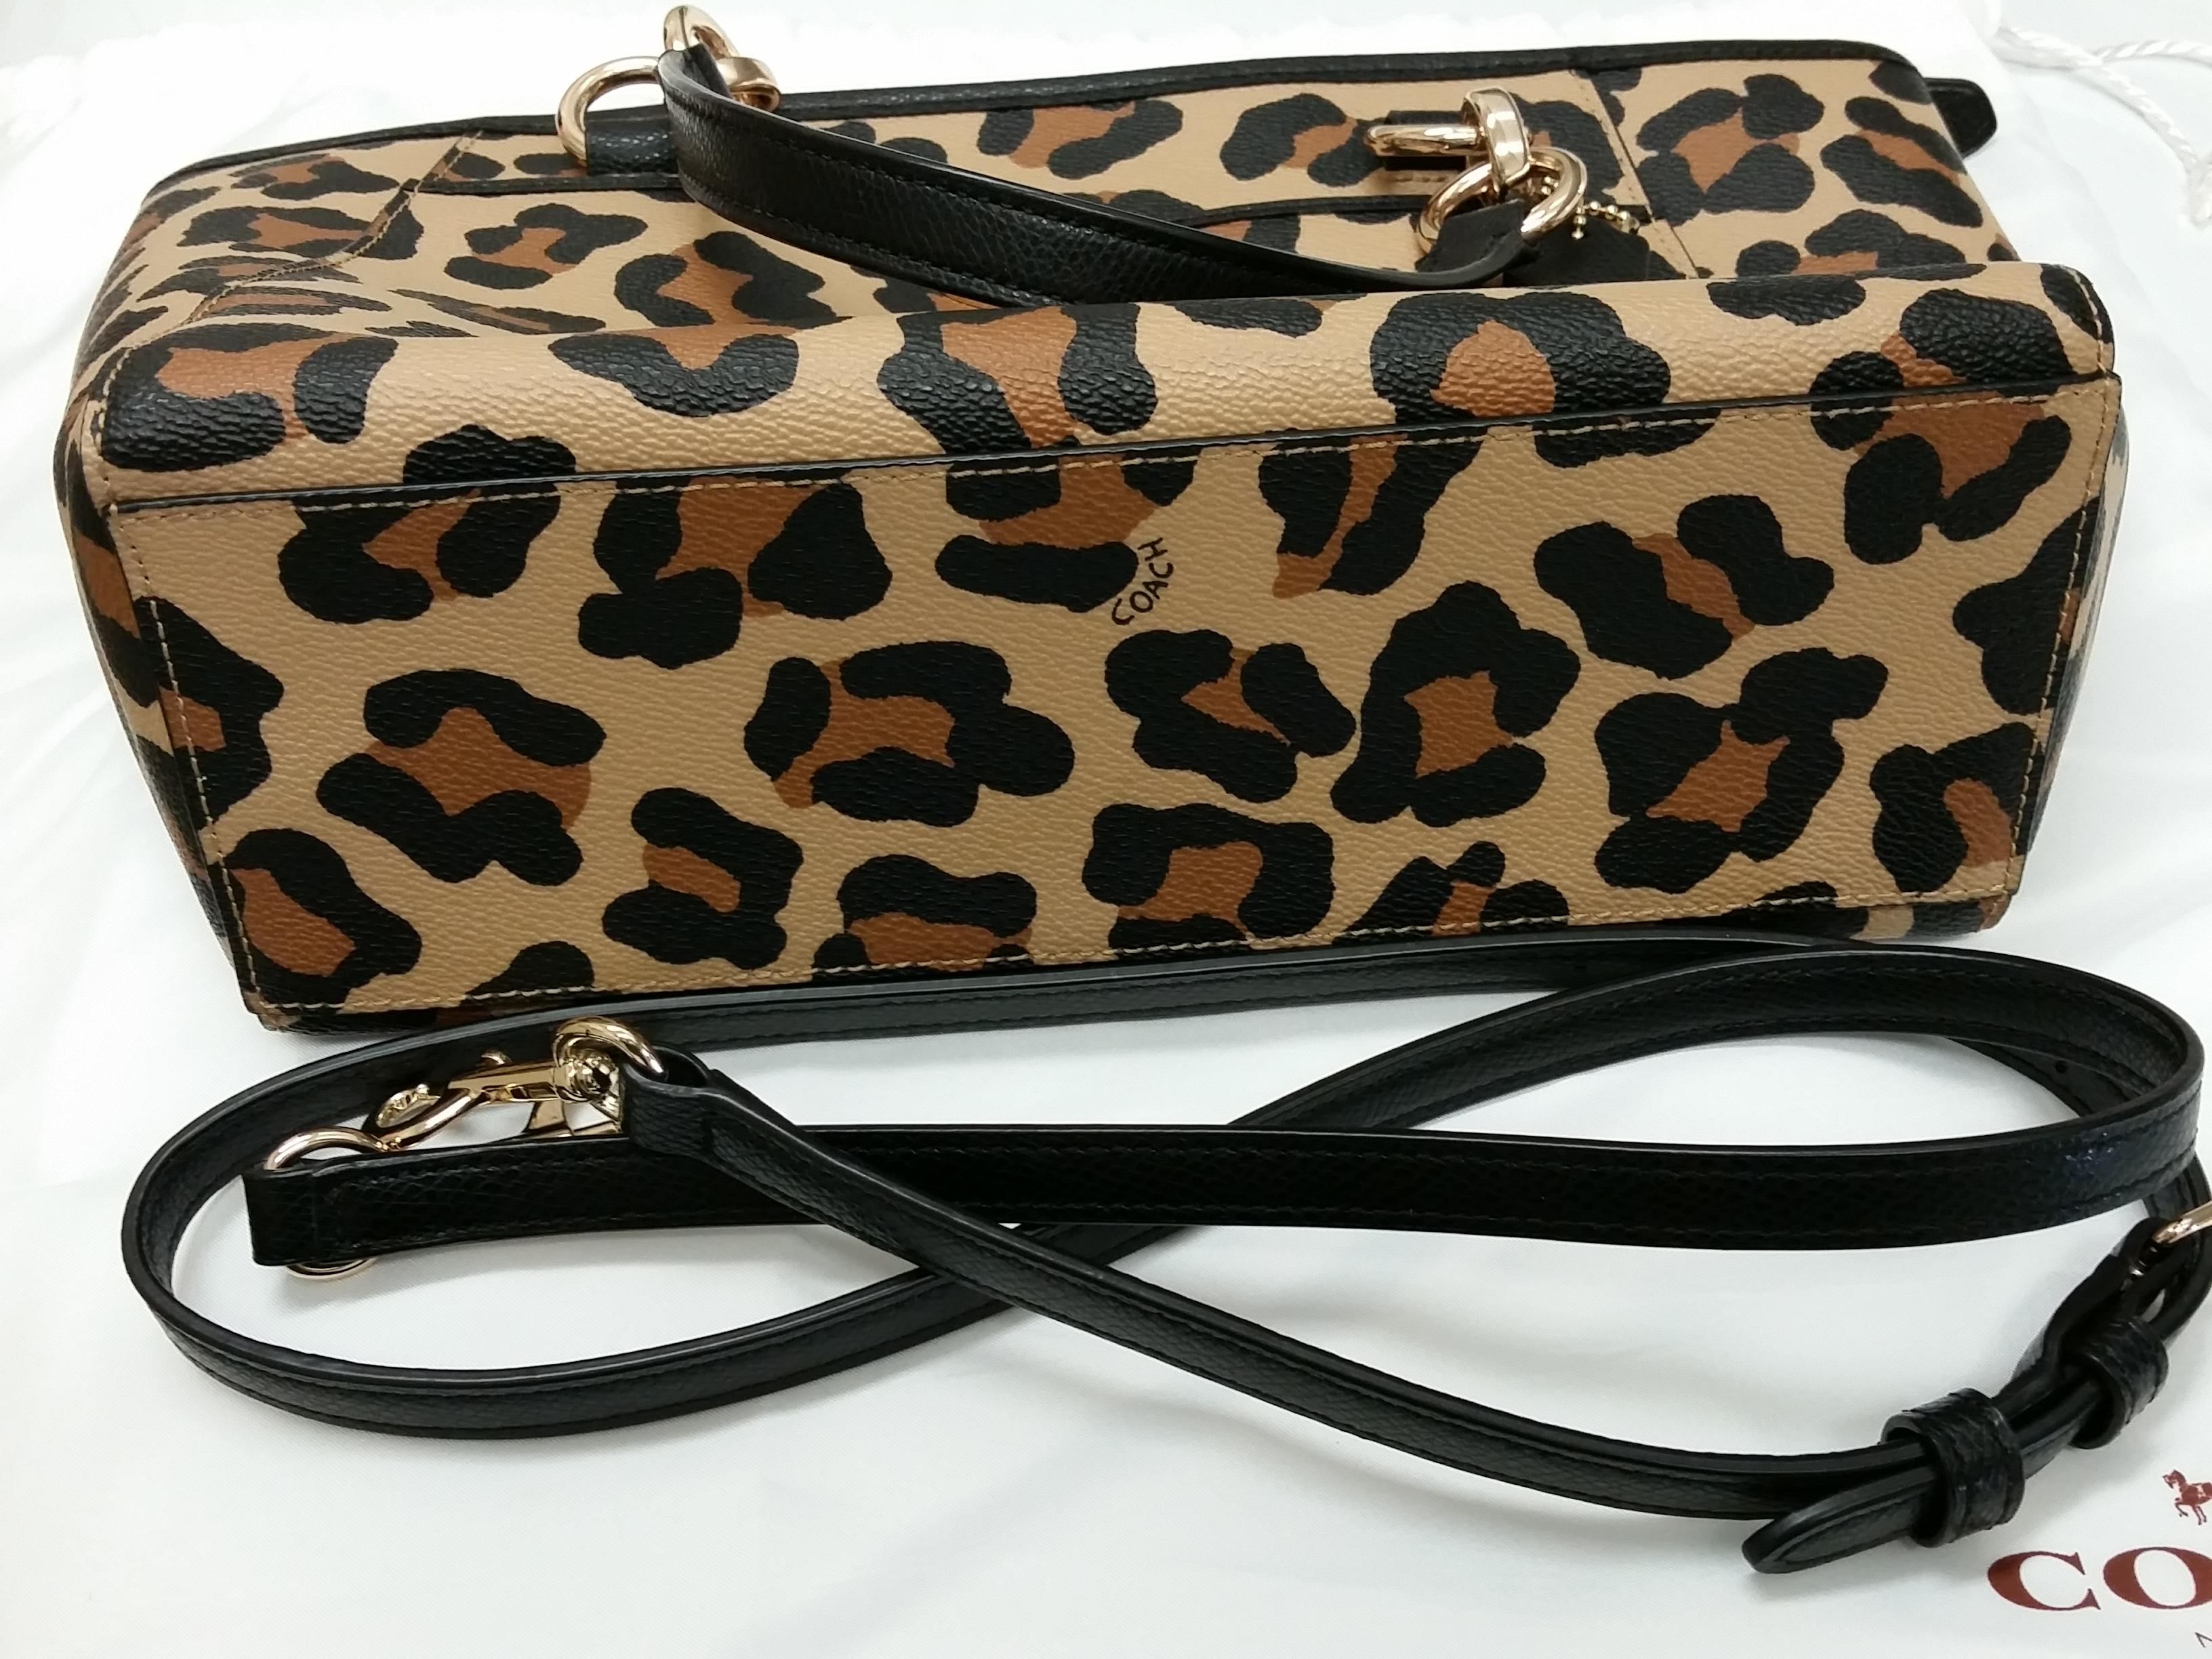 26669b62a7ef ... uk coach tan ocelot mini ellis tote coach mini mini satchel crossbody  tote in ocelot print